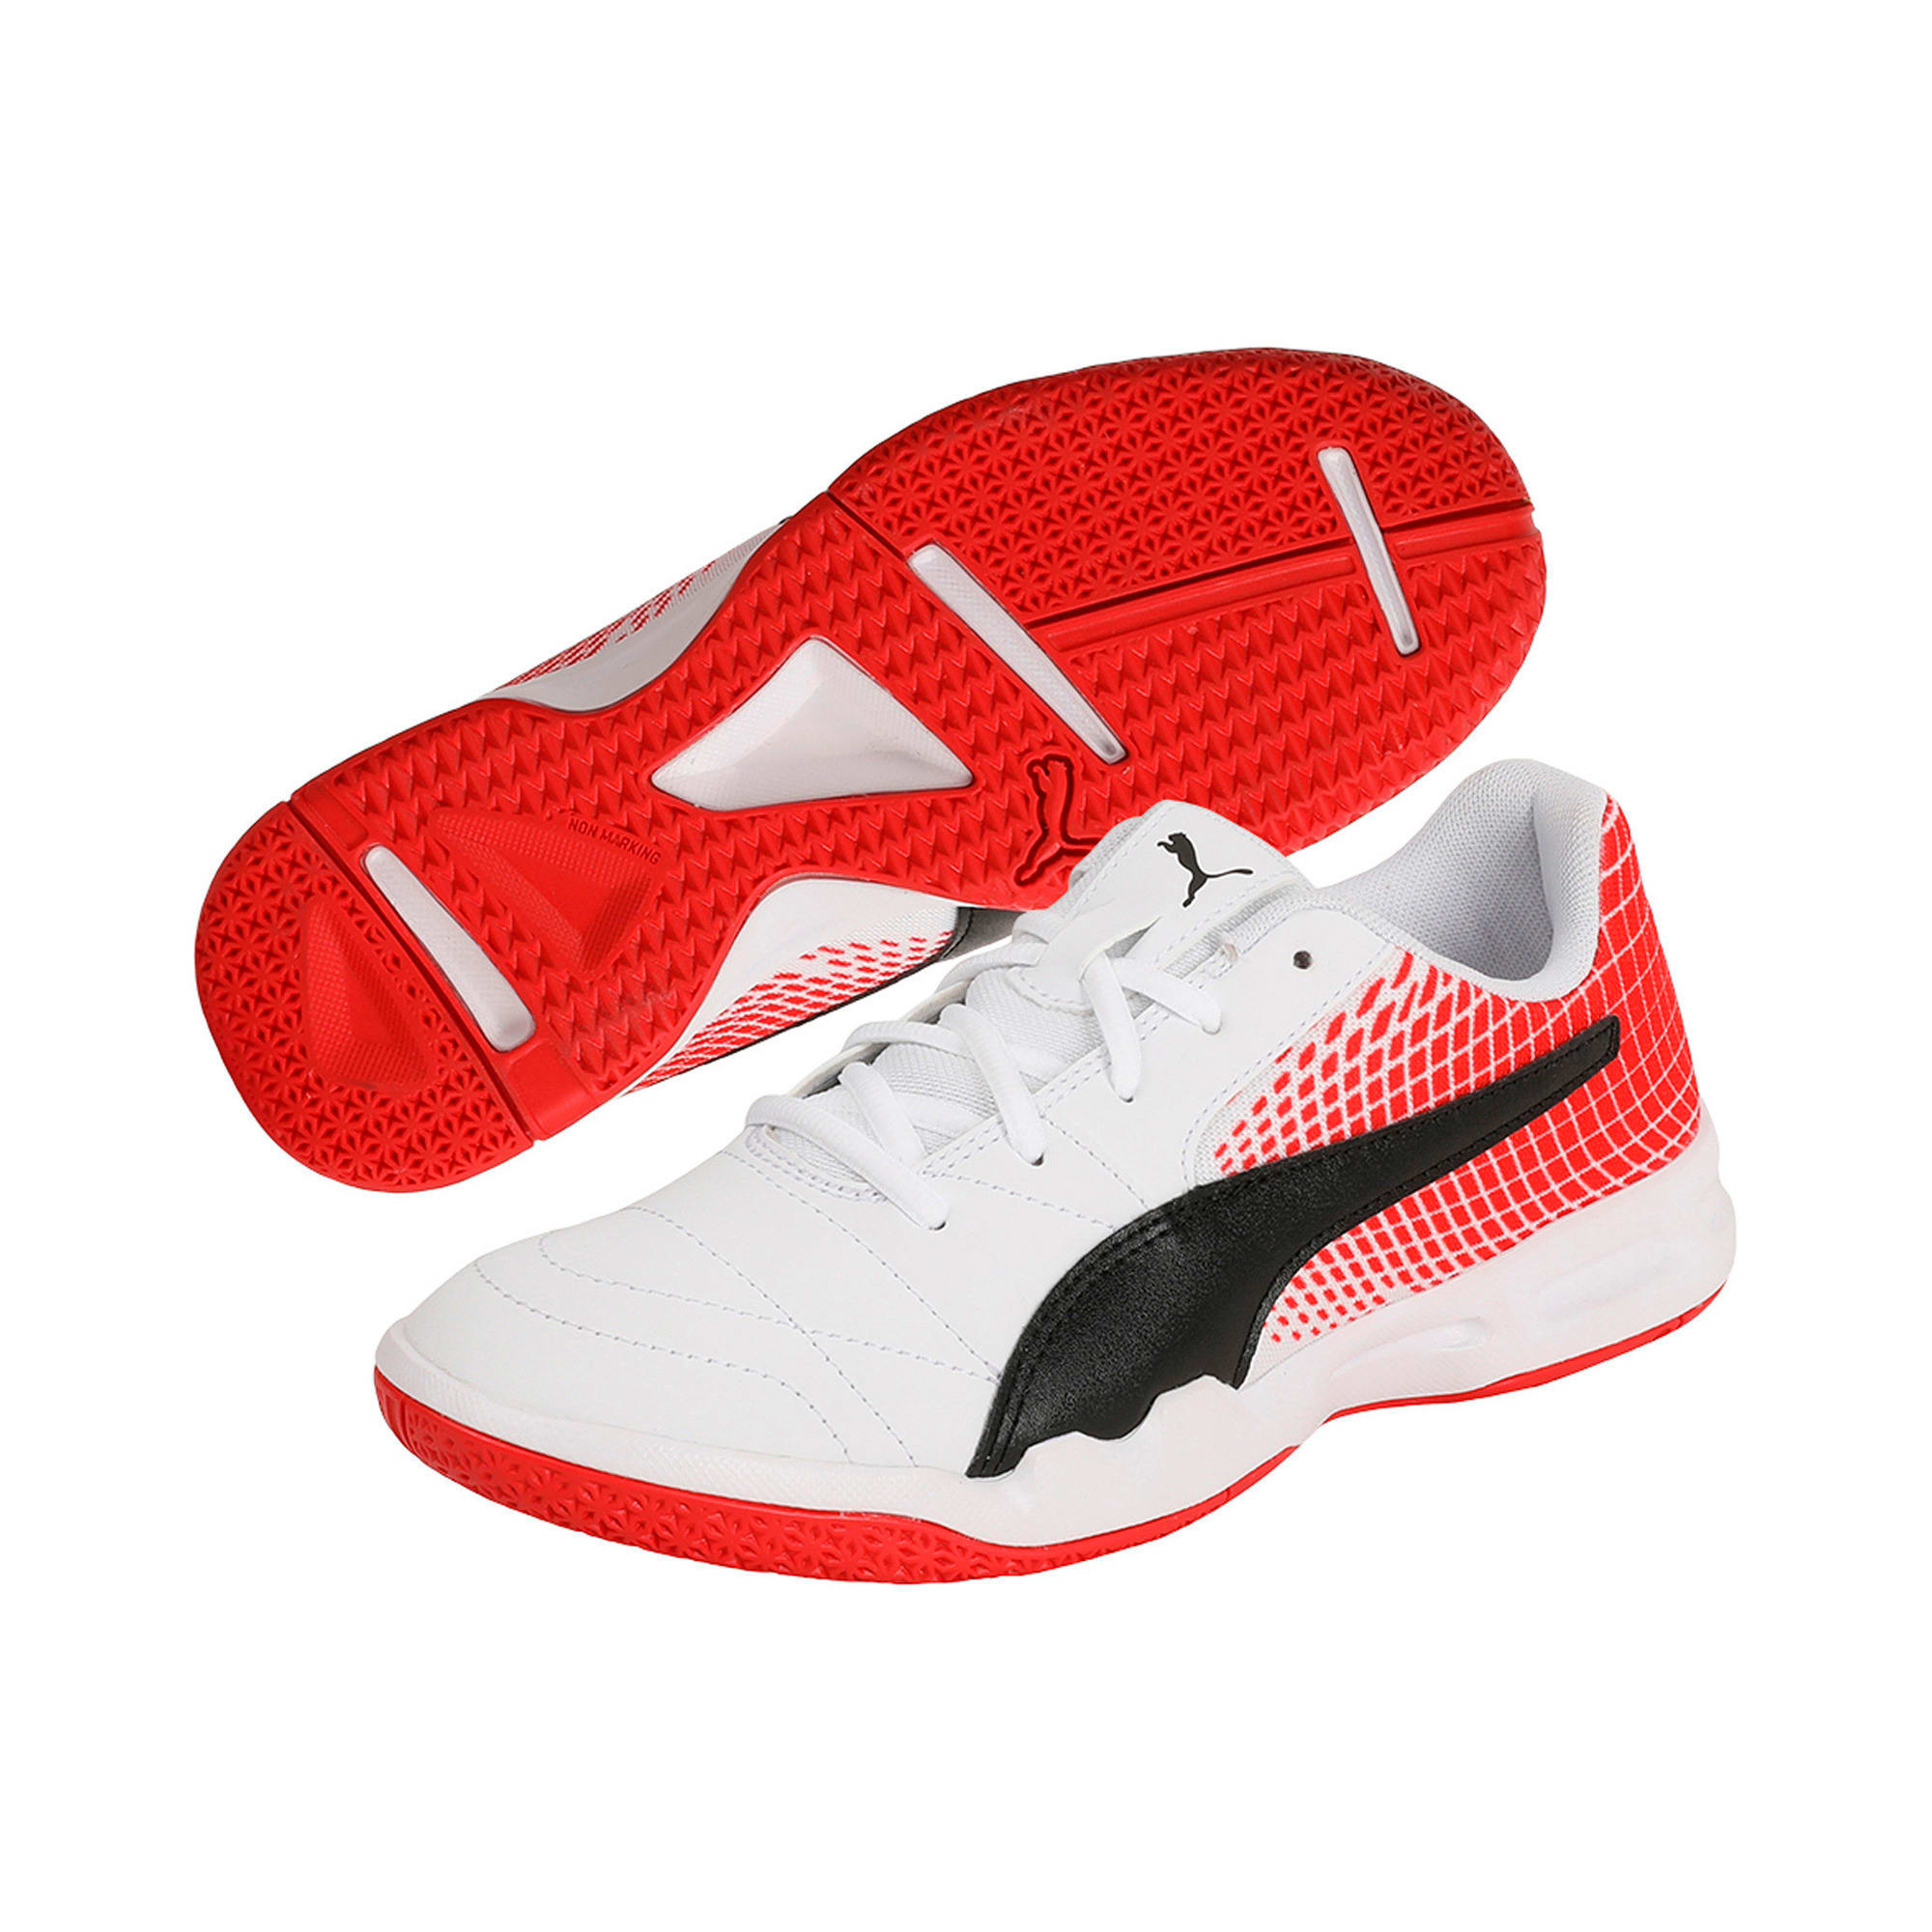 Thumbnail 2 of Veloz Indoor NG Kids' Training Shoes, White-Black-Flame Scarlet, medium-IND